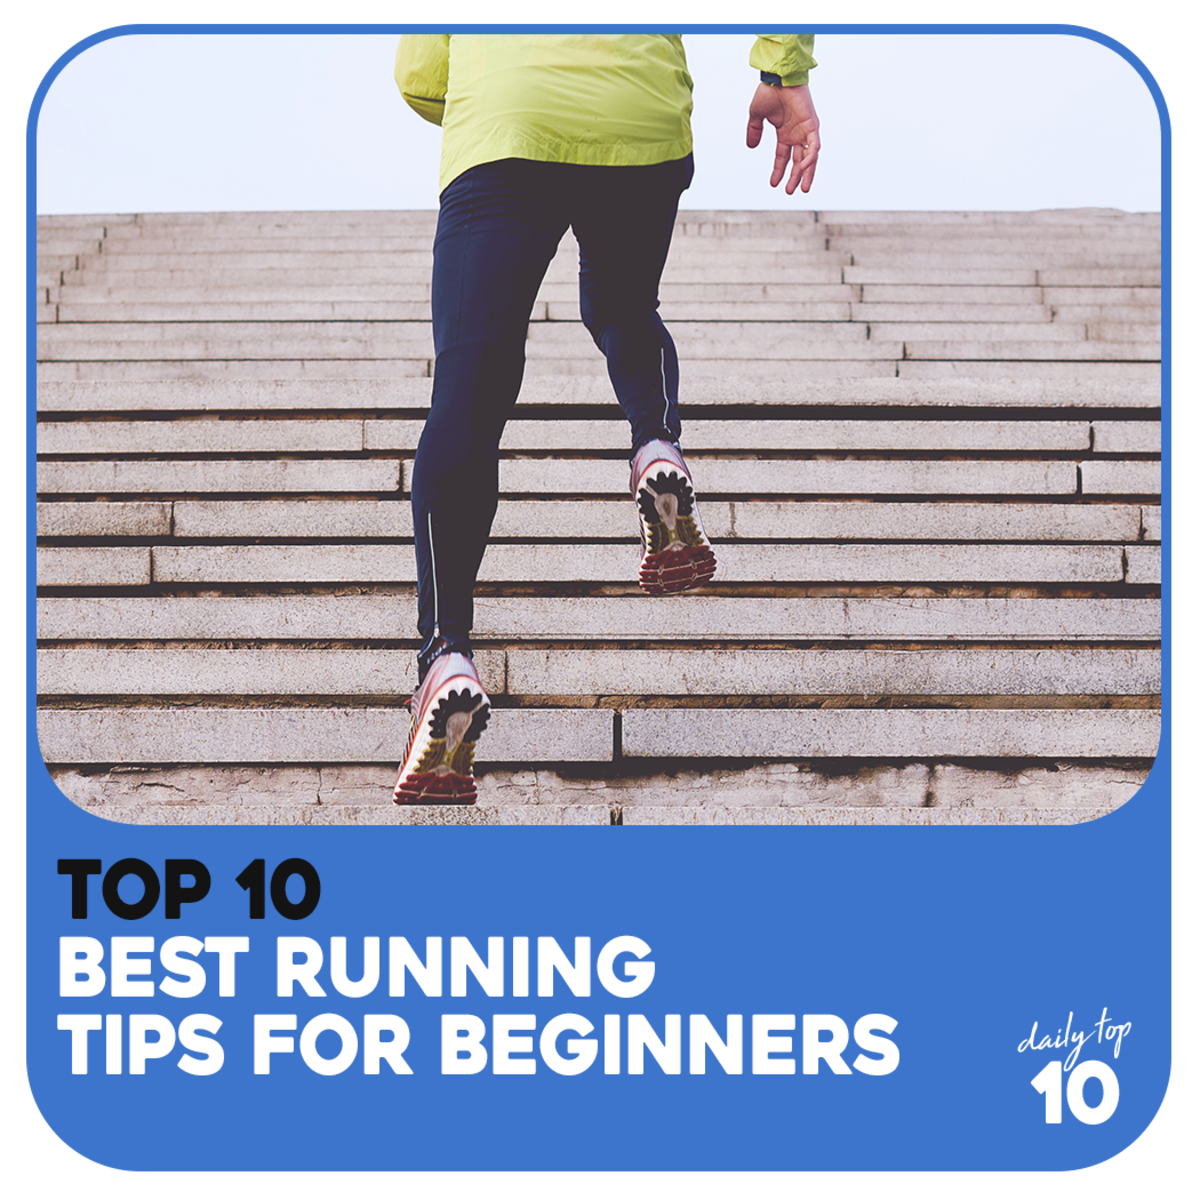 Top 10 Best Running Tips for Beginners with Pictures!